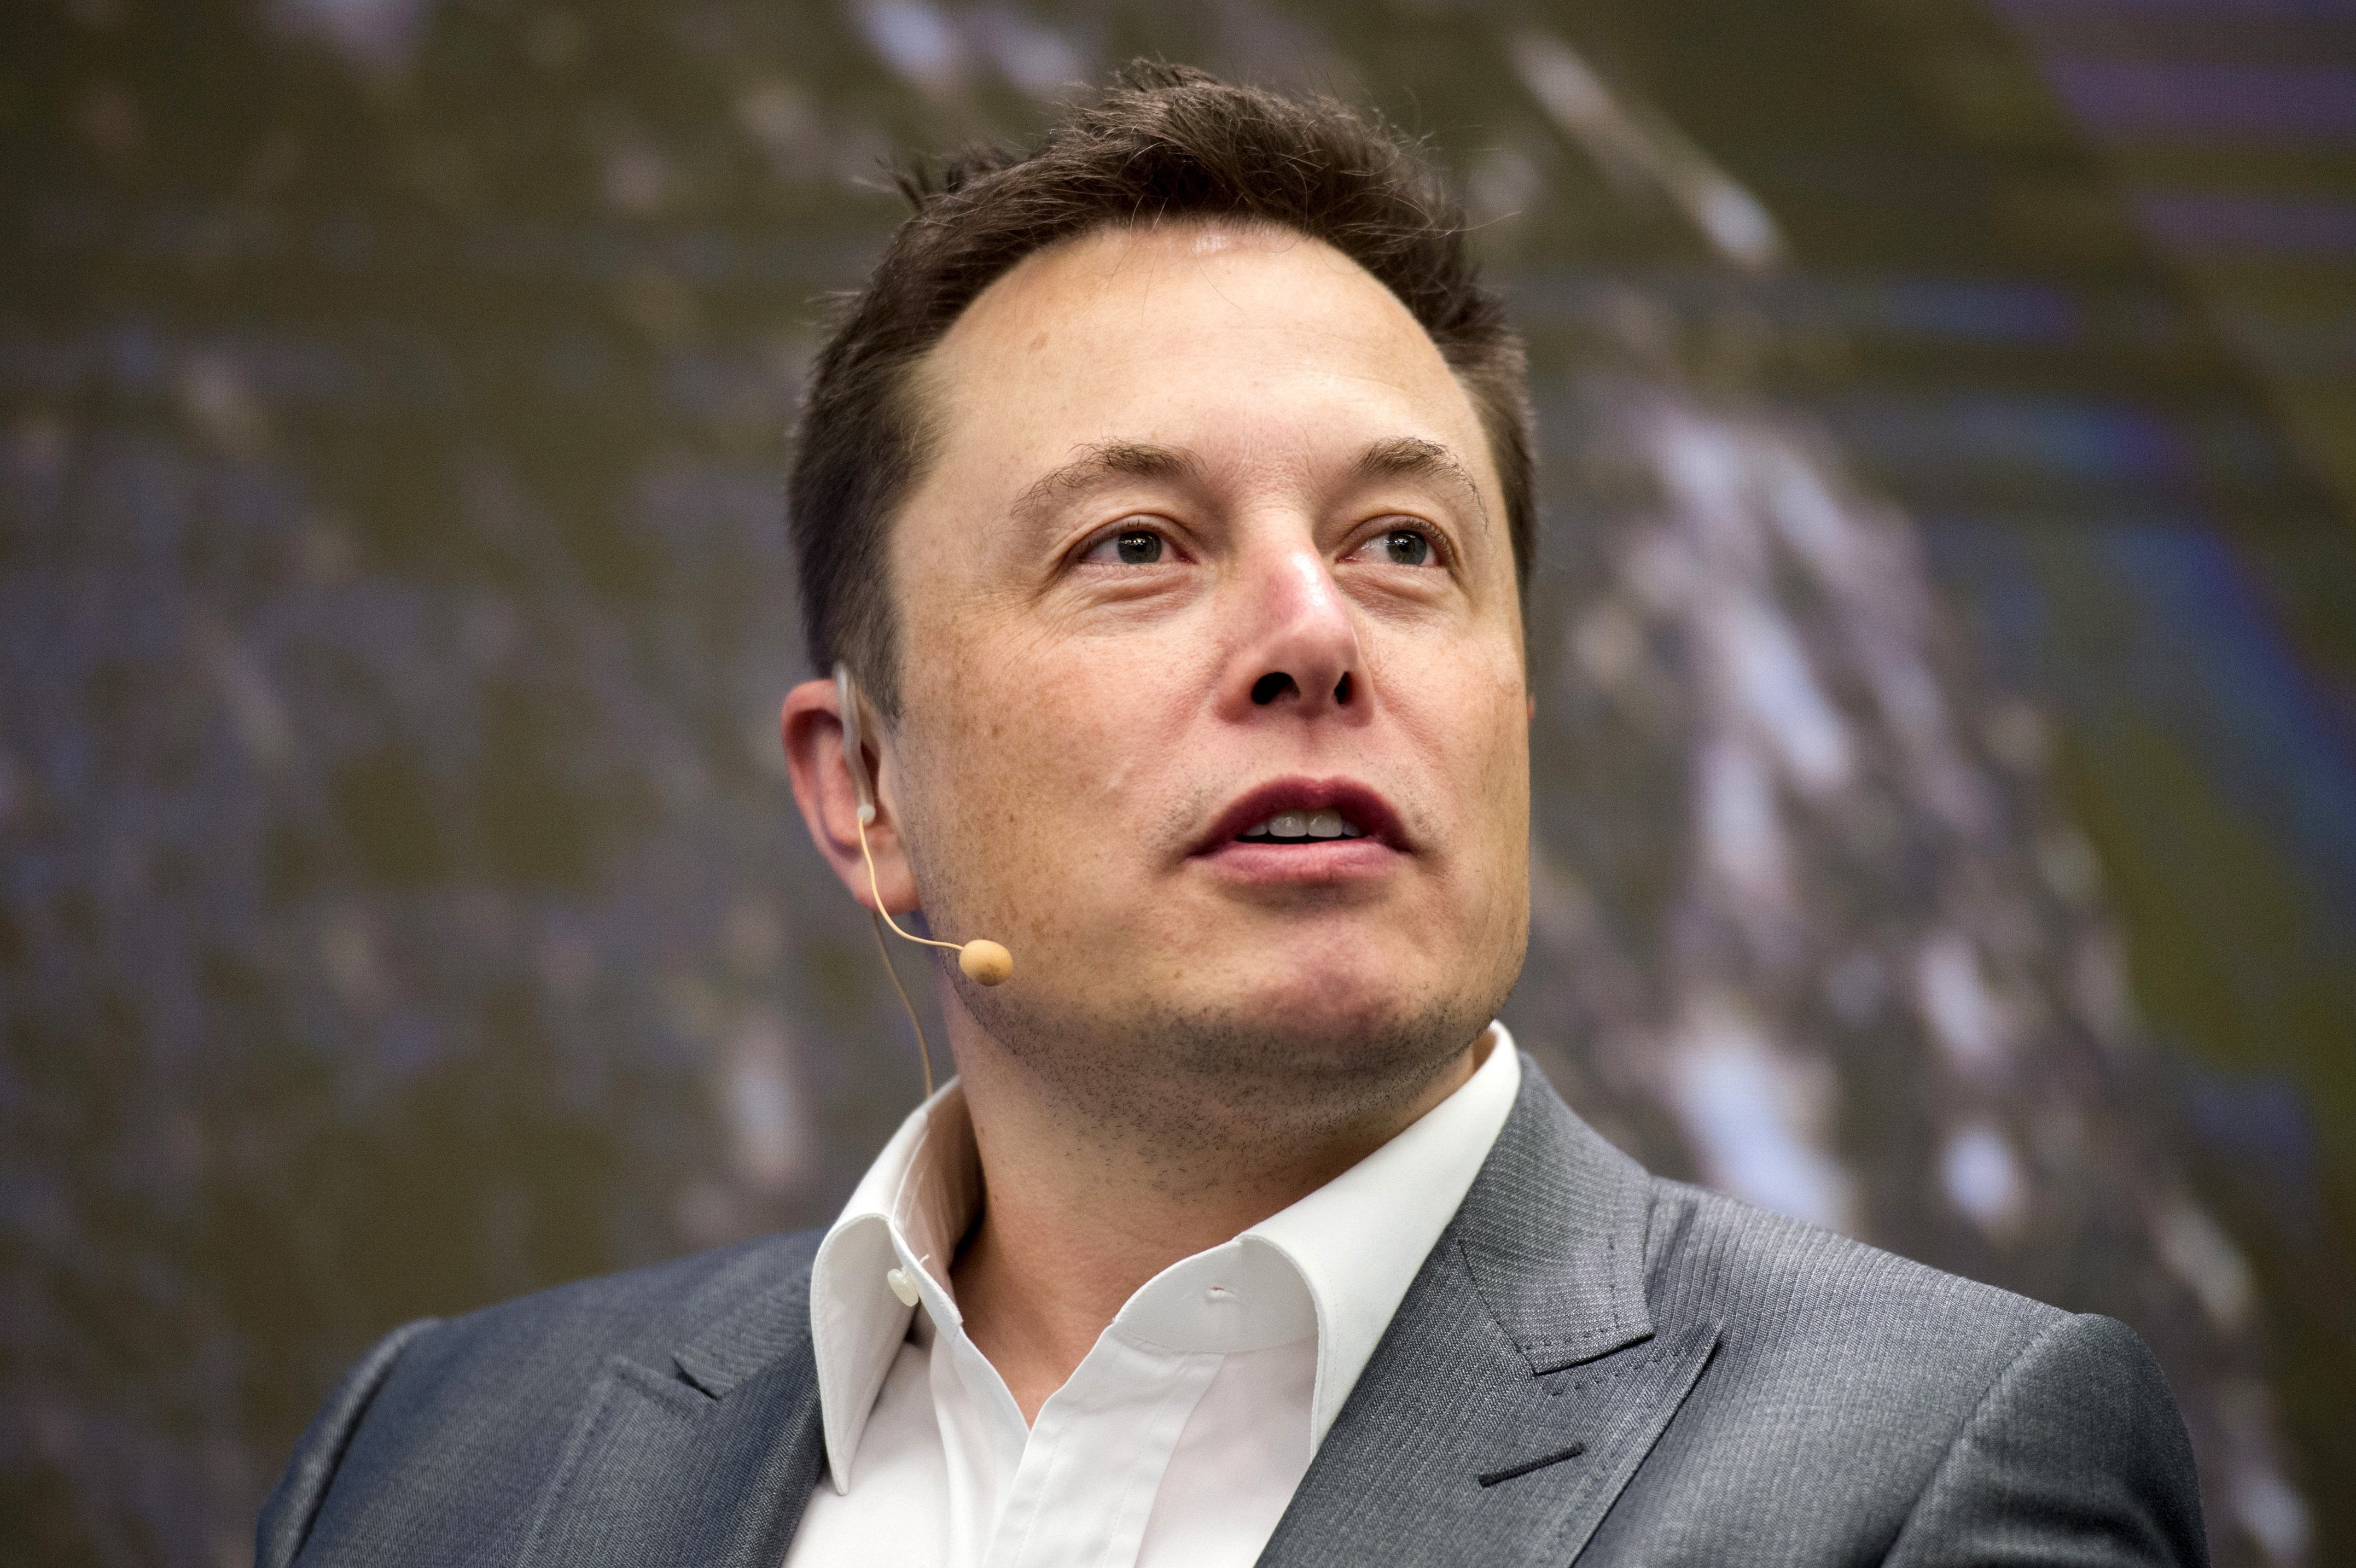 This Is What Elon Musk Tony Hsieh And Other Successful Business Leaders Ask Job Candidates World Economic Forum